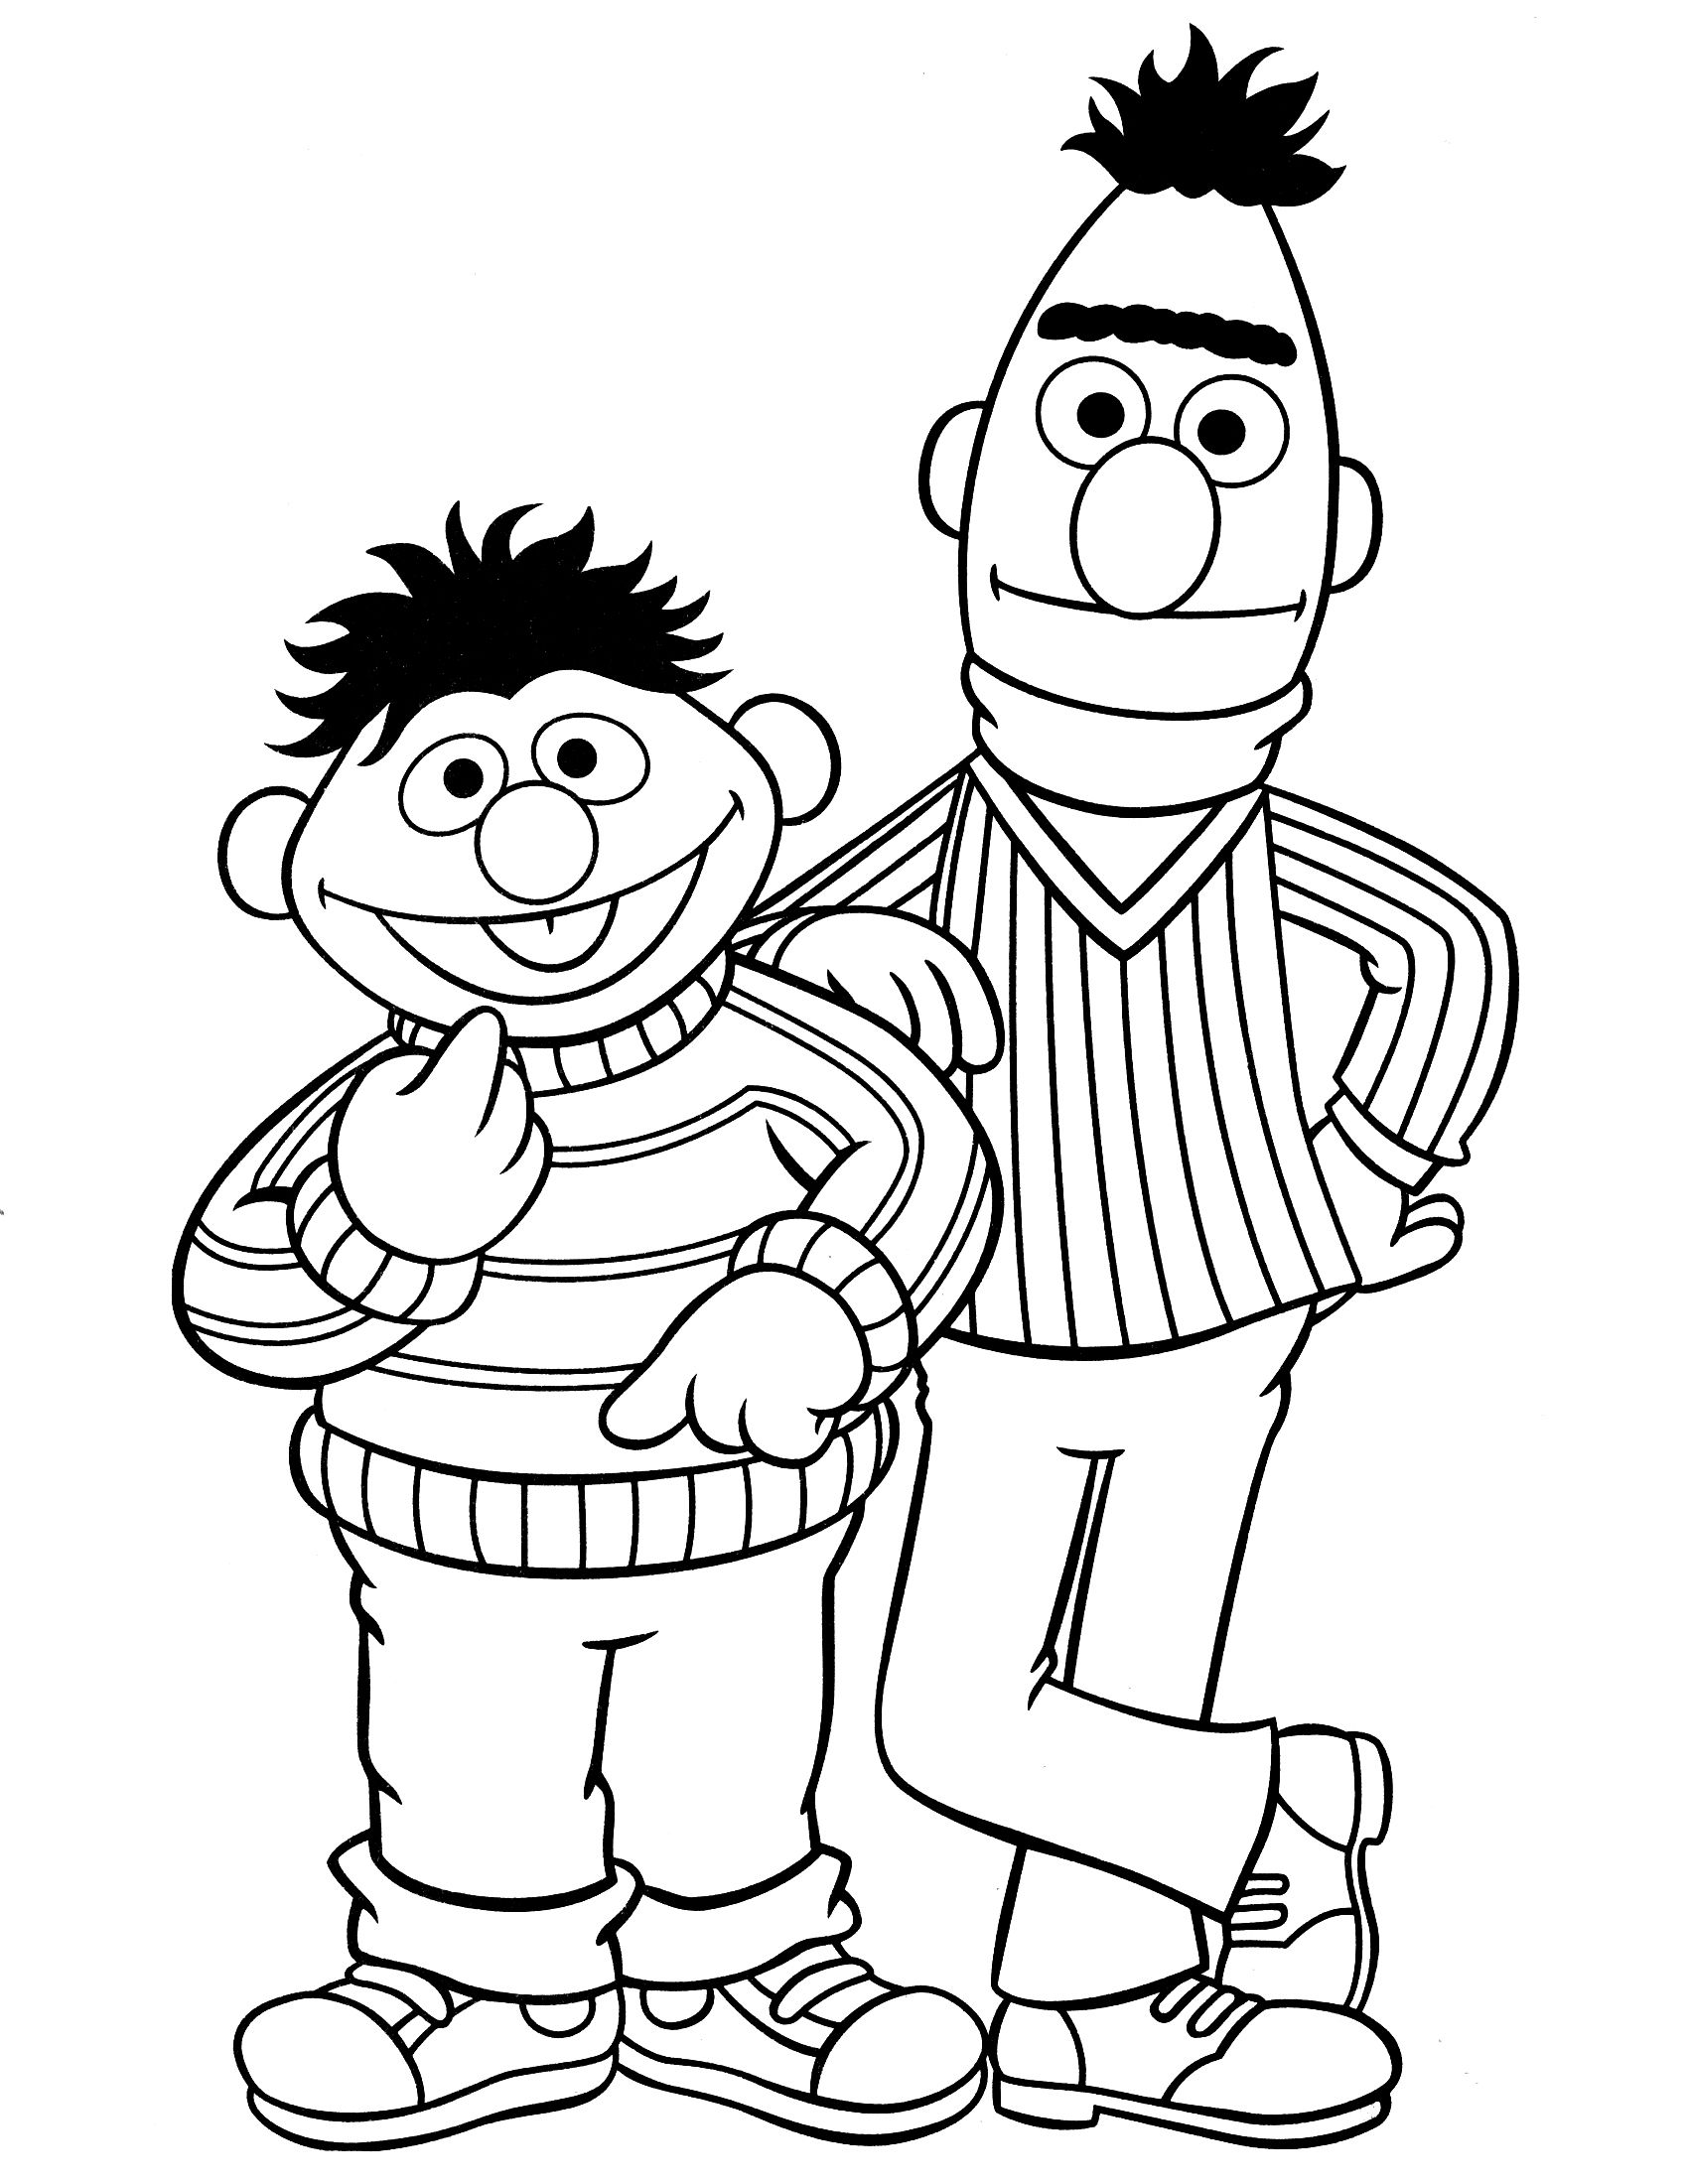 Here We Provide Some Black And White Sesame Street Coloring